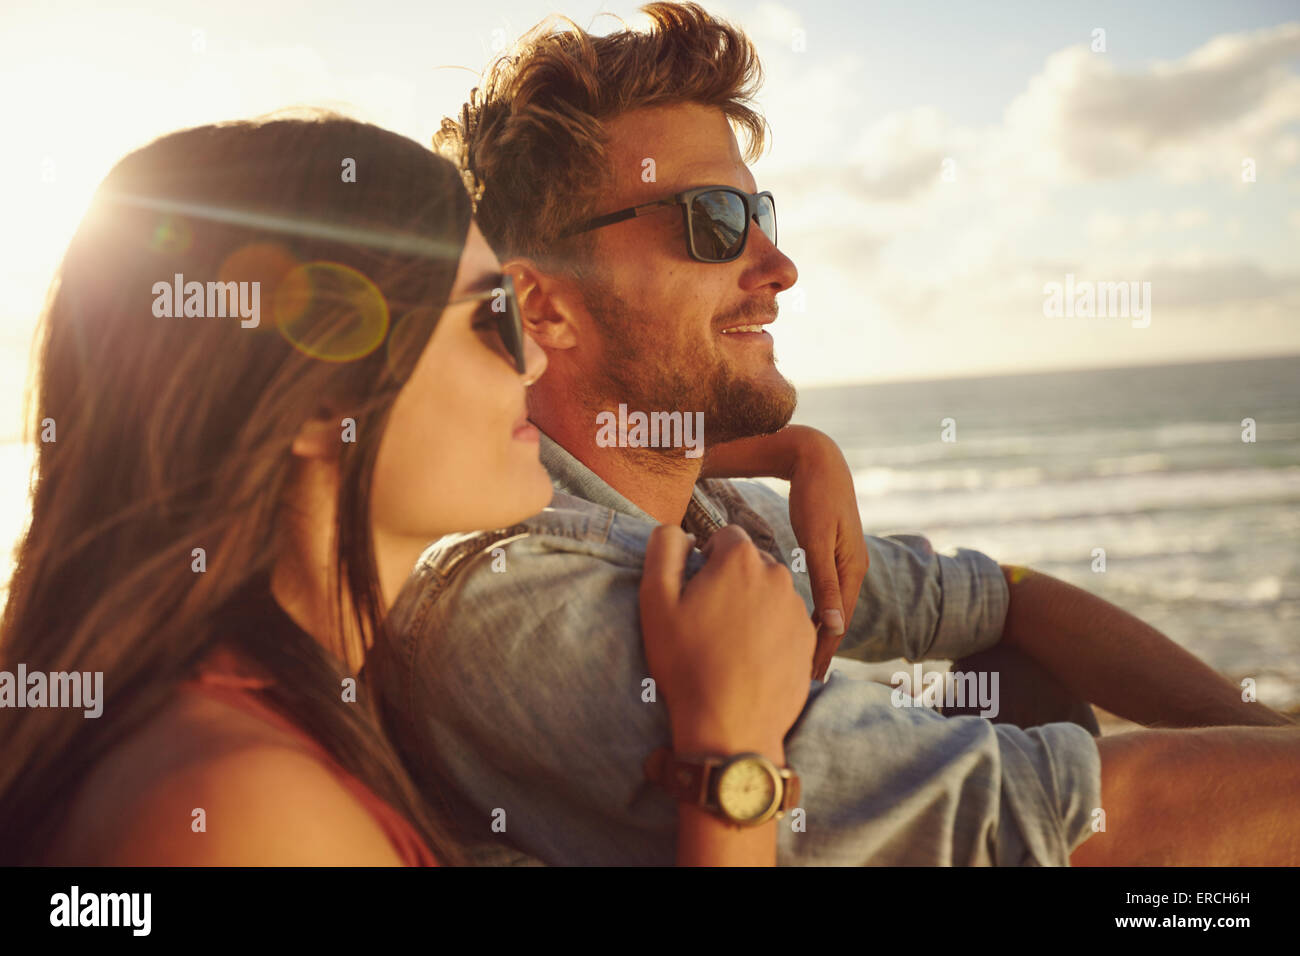 Romantic young couple together outdoors on a summer day. Caucasian couple enjoying the beach view. - Stock Image